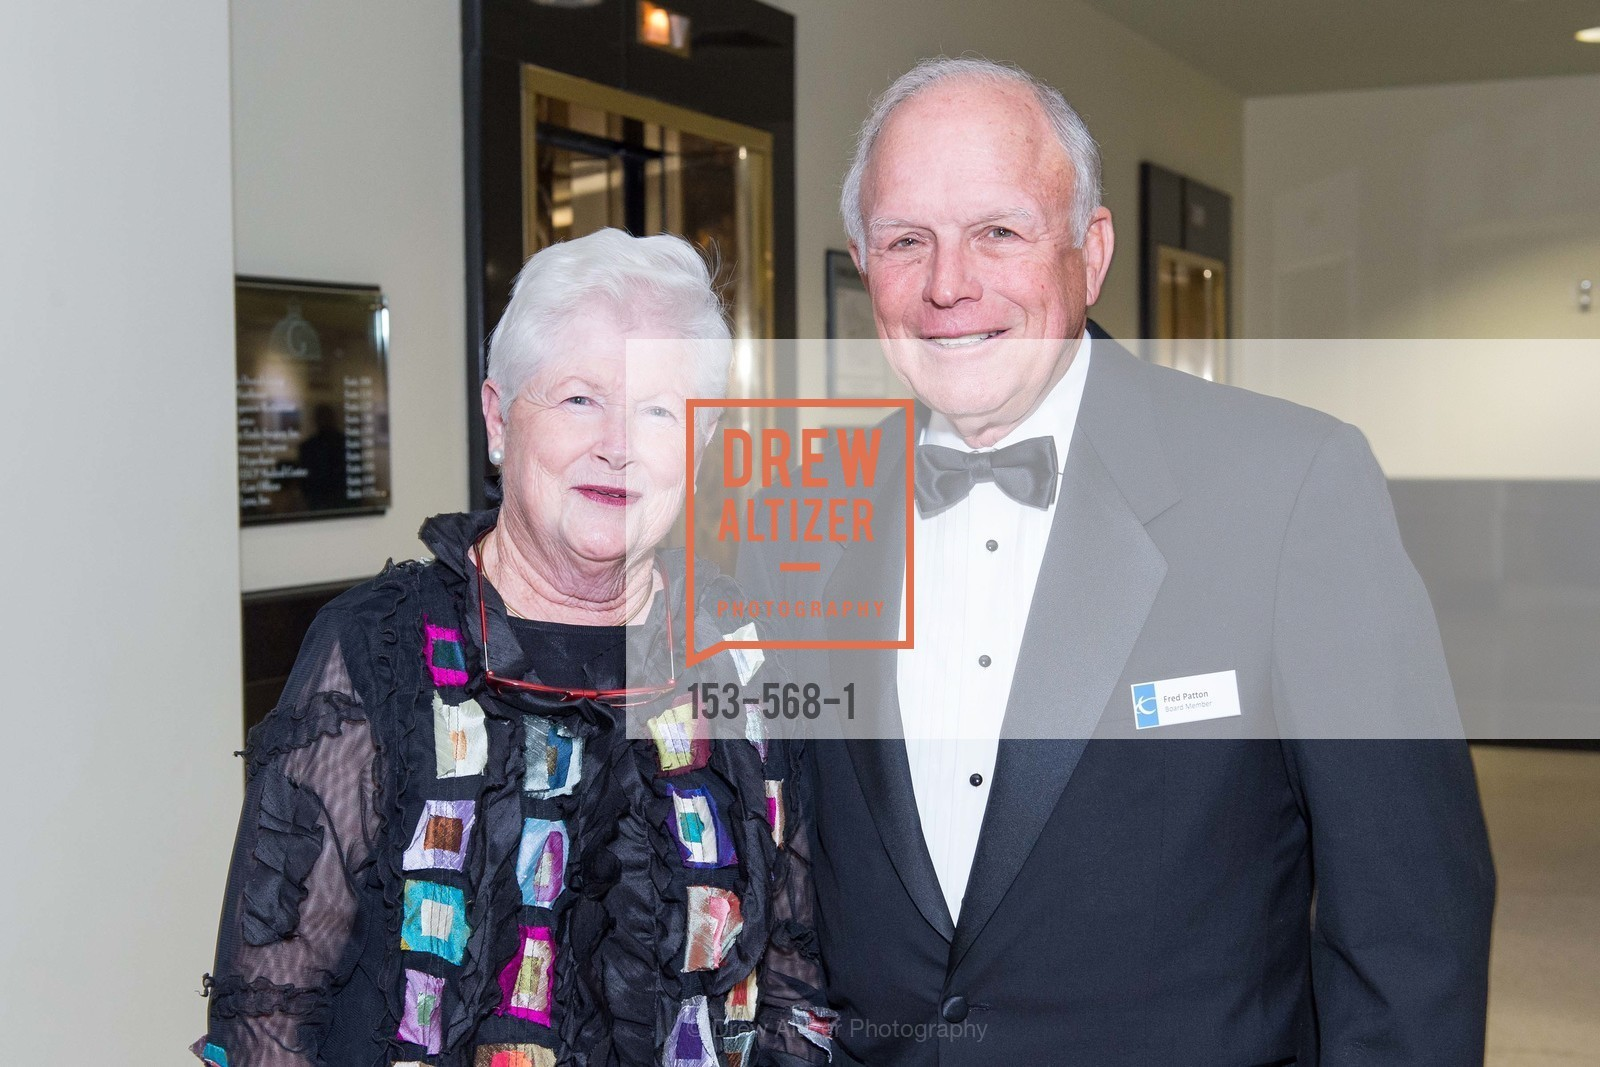 Ann Patton, Ted Patton, SOTHEBY'S  Hosts a Private Viewing of Highlights from the Collection of MRS. PAUL MELLON, US, September 17th, 2014,Drew Altizer, Drew Altizer Photography, full-service agency, private events, San Francisco photographer, photographer california